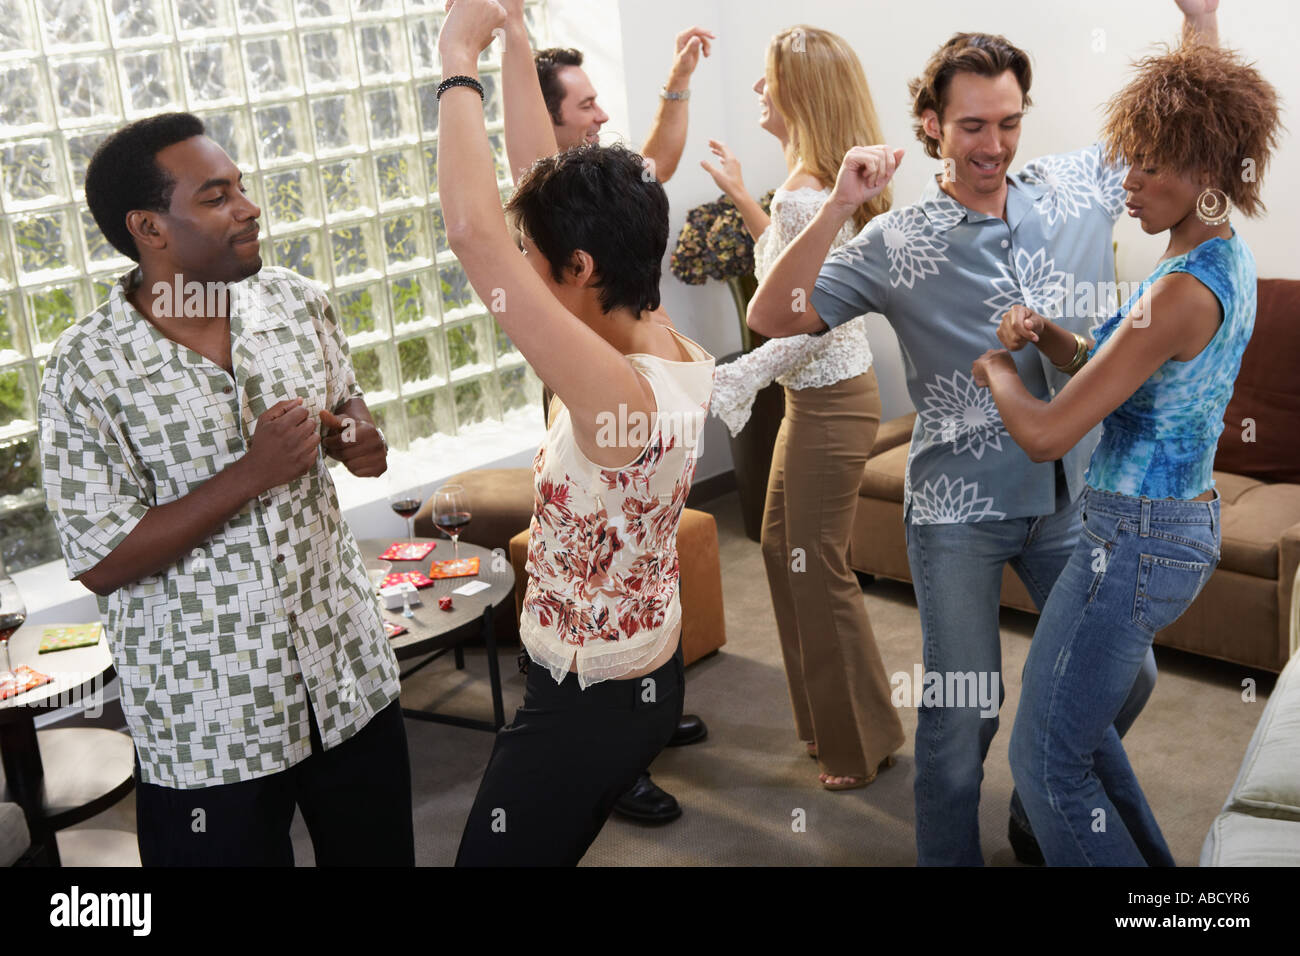 People Dancing At A House Party